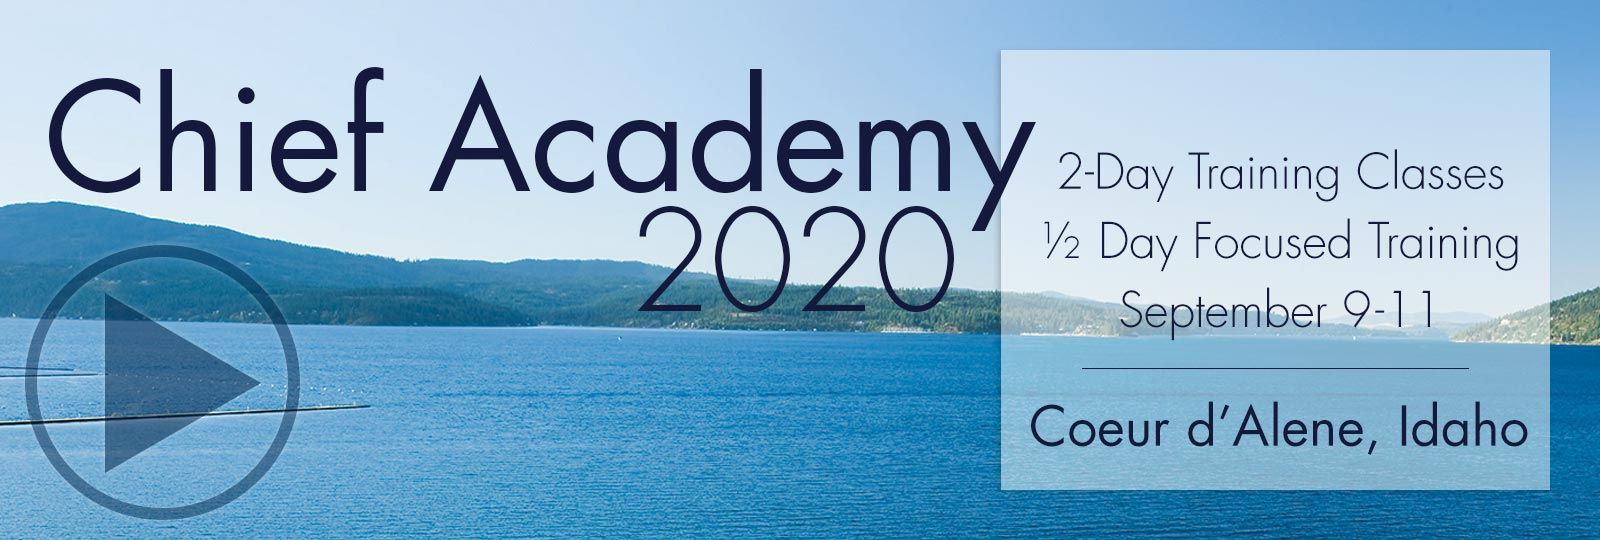 Chief Academy 2020 will consist of two days of classroom training and a half-day of focused training September 9-11 in Coeur d'Alene, Idaho.